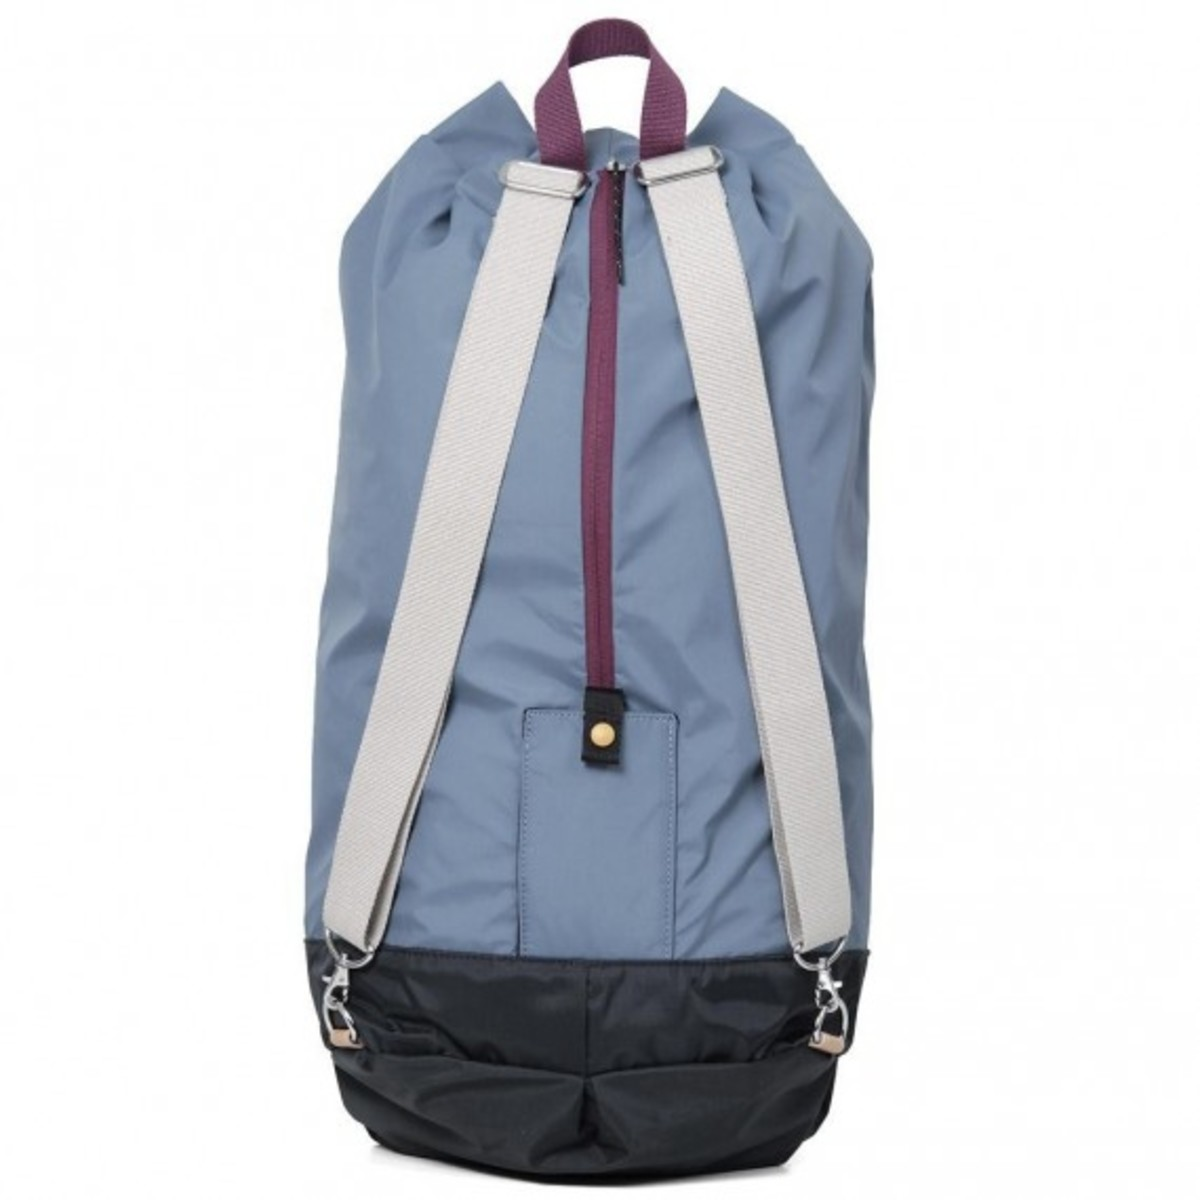 wood-wood-eastpak-collection-available-11